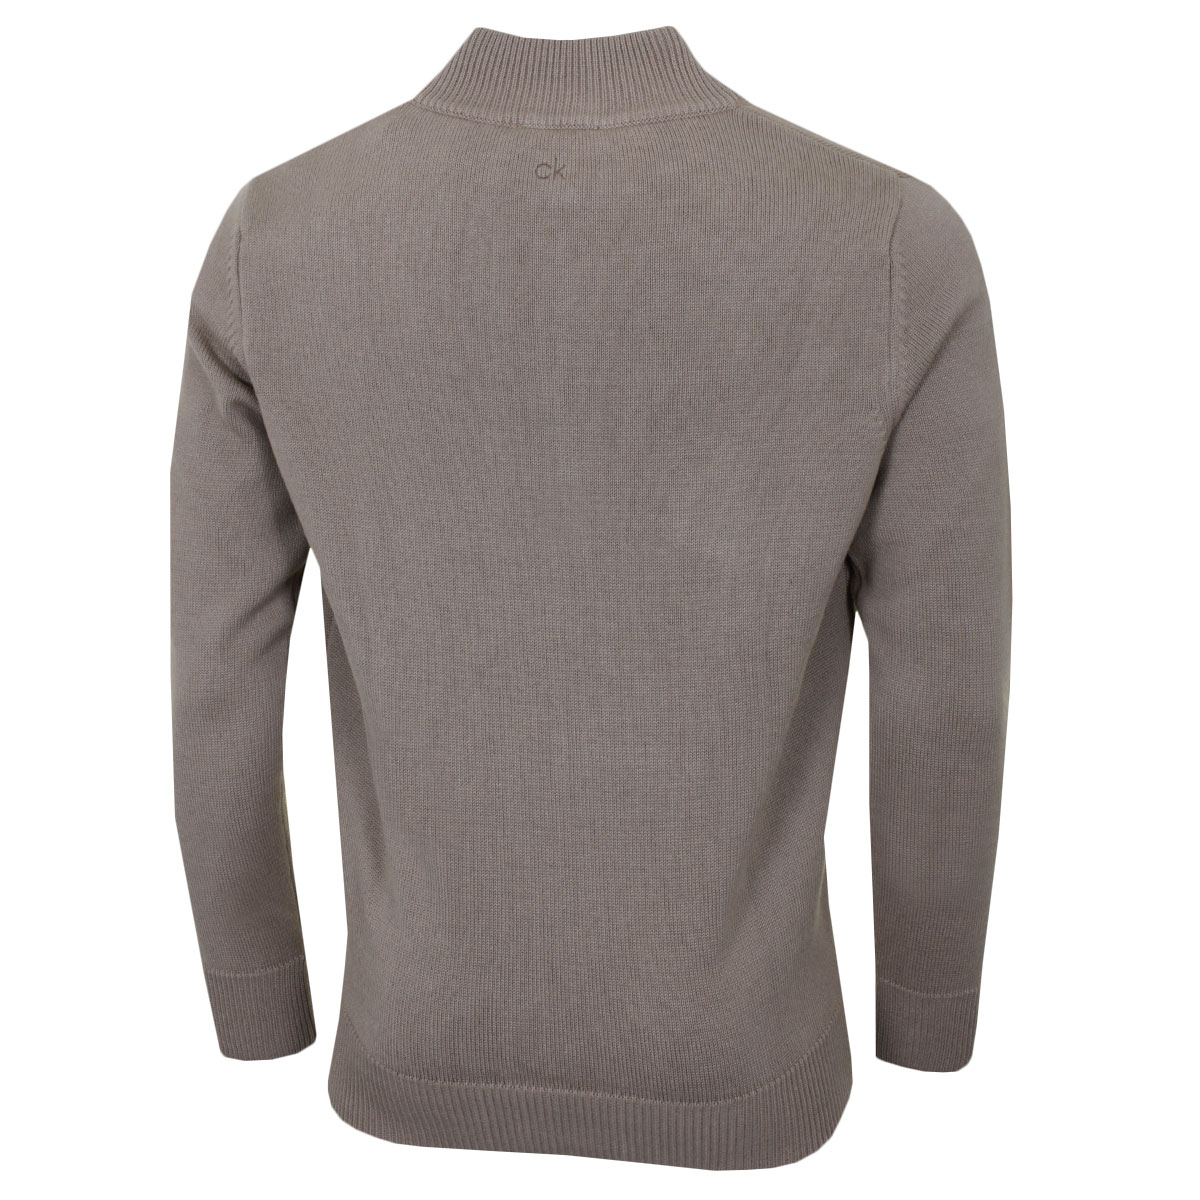 Calvin-Klein-Golf-Mens-2019-Chunky-Cotton-1-2-Zip-Golf-Top-Sweater-28-OFF-RRP thumbnail 40